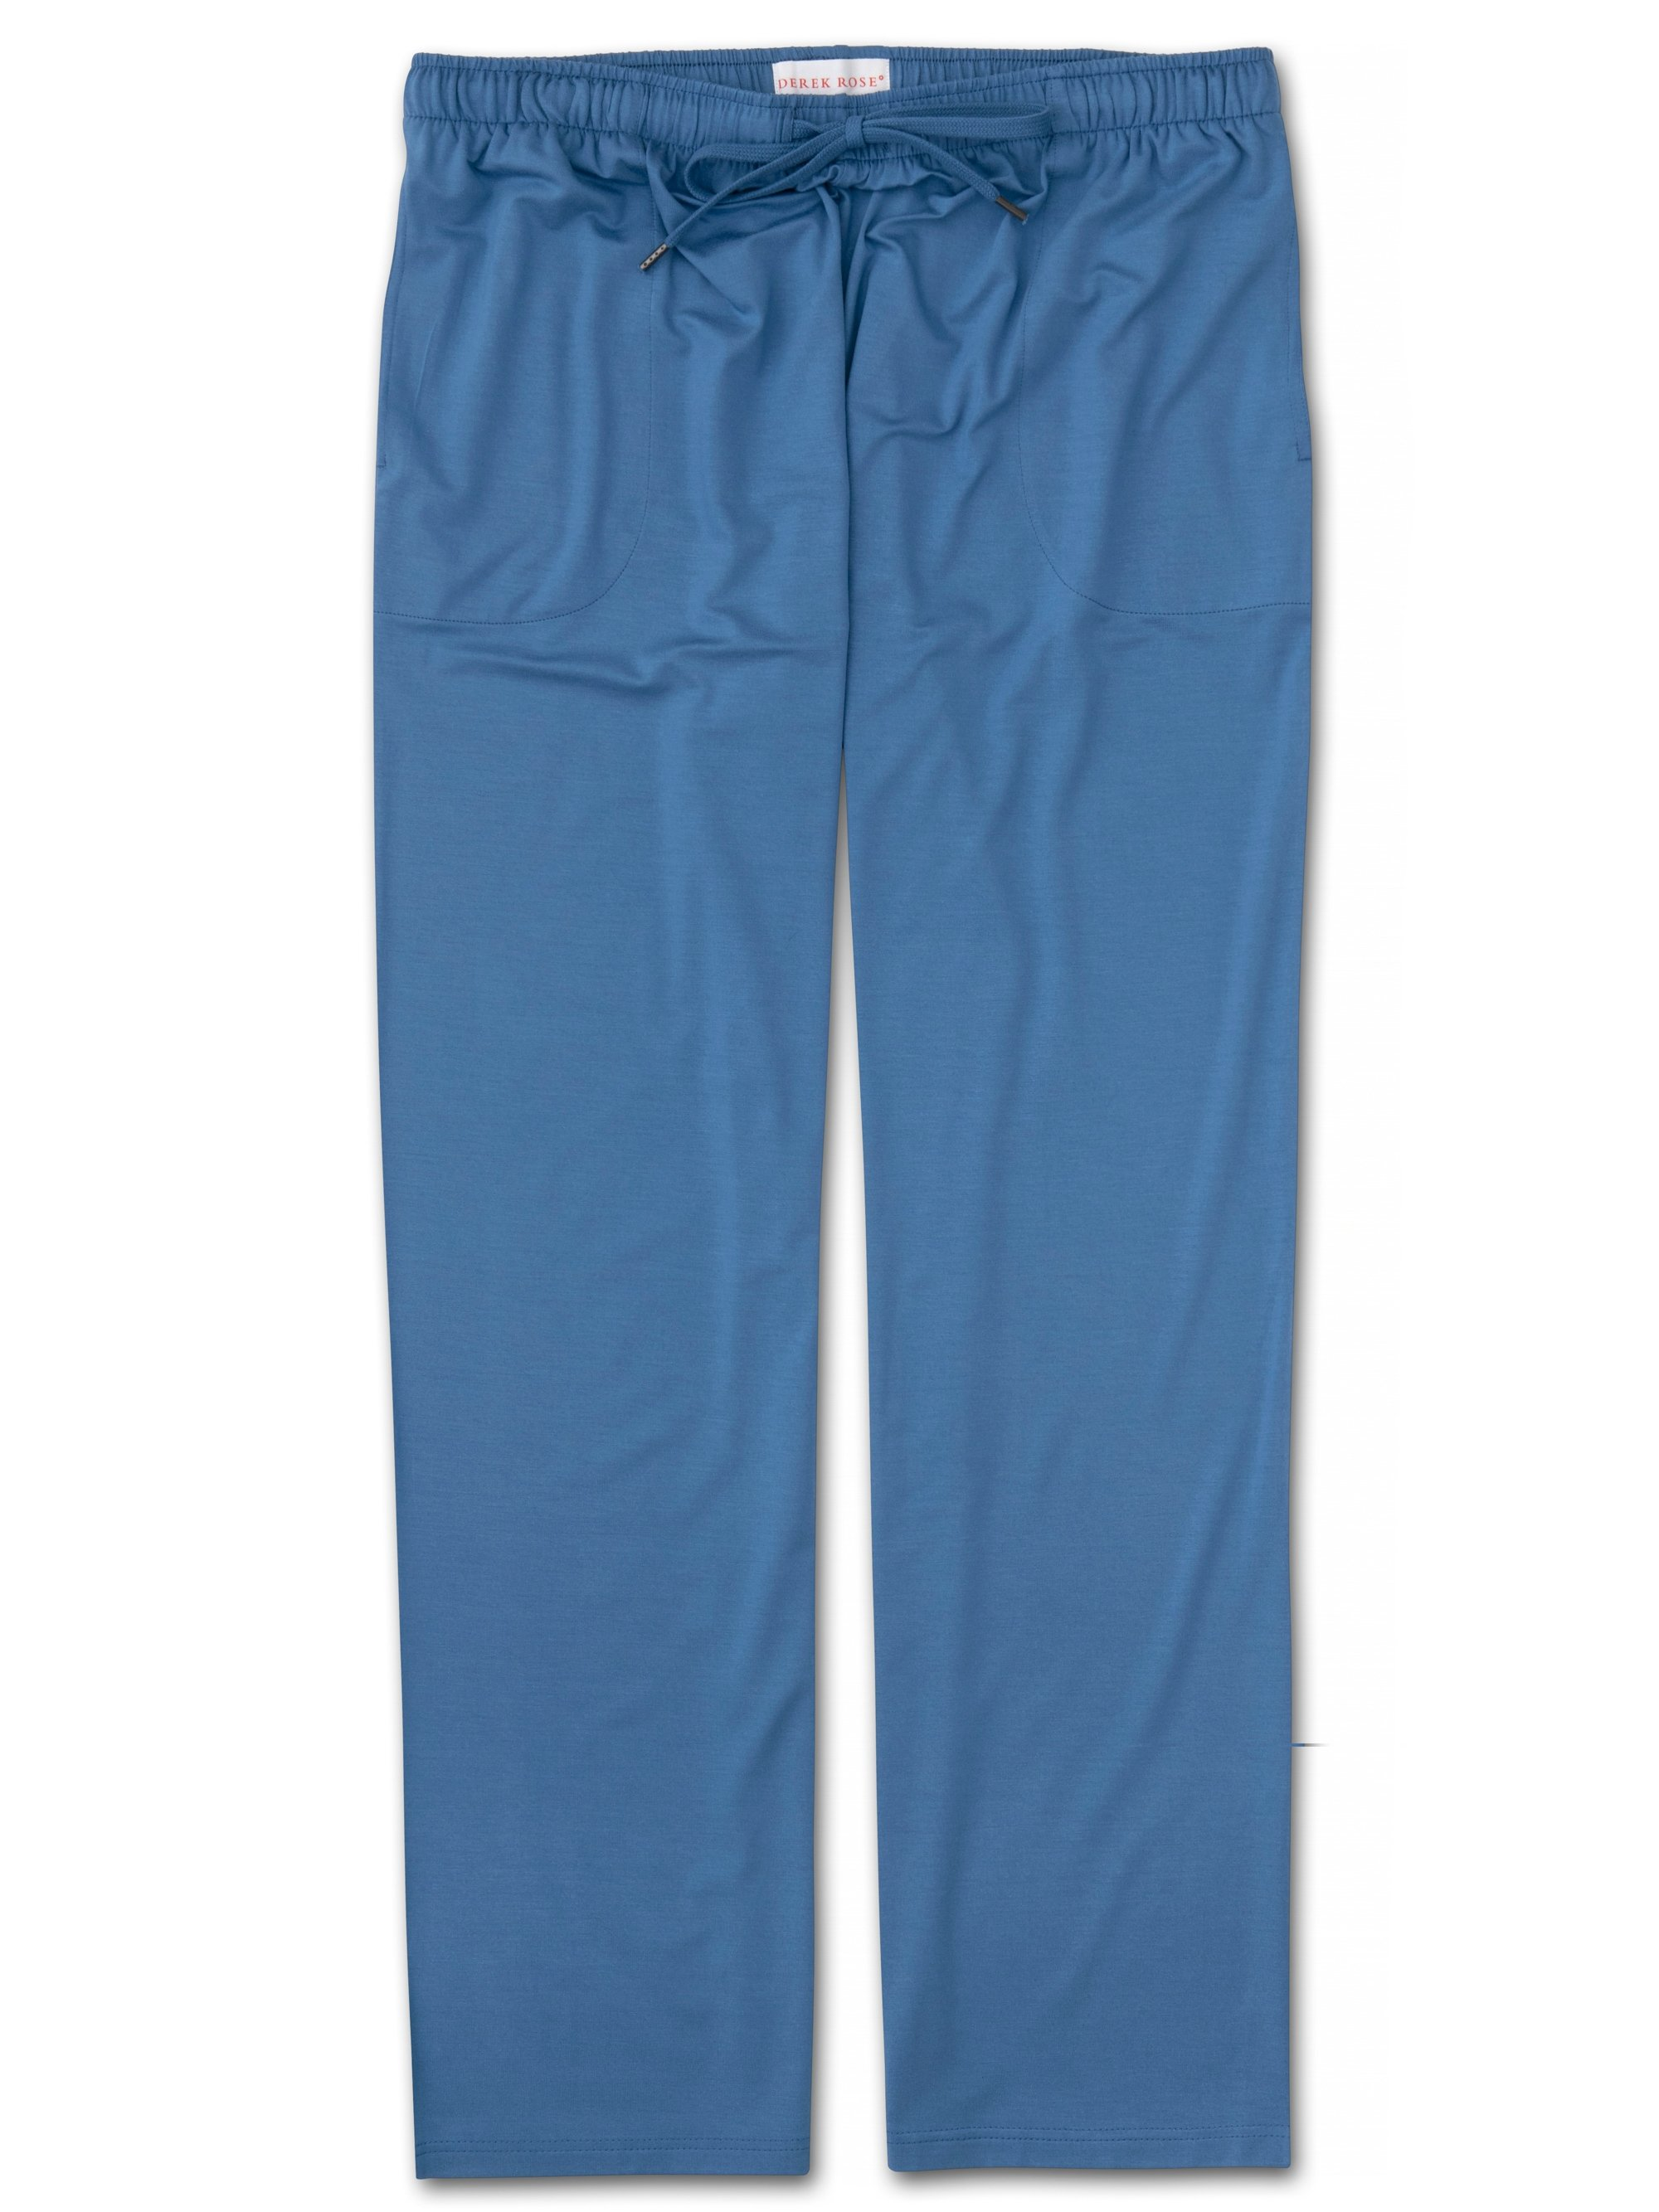 Men's Jersey Trousers Basel 9 Micro Modal Stretch Blue